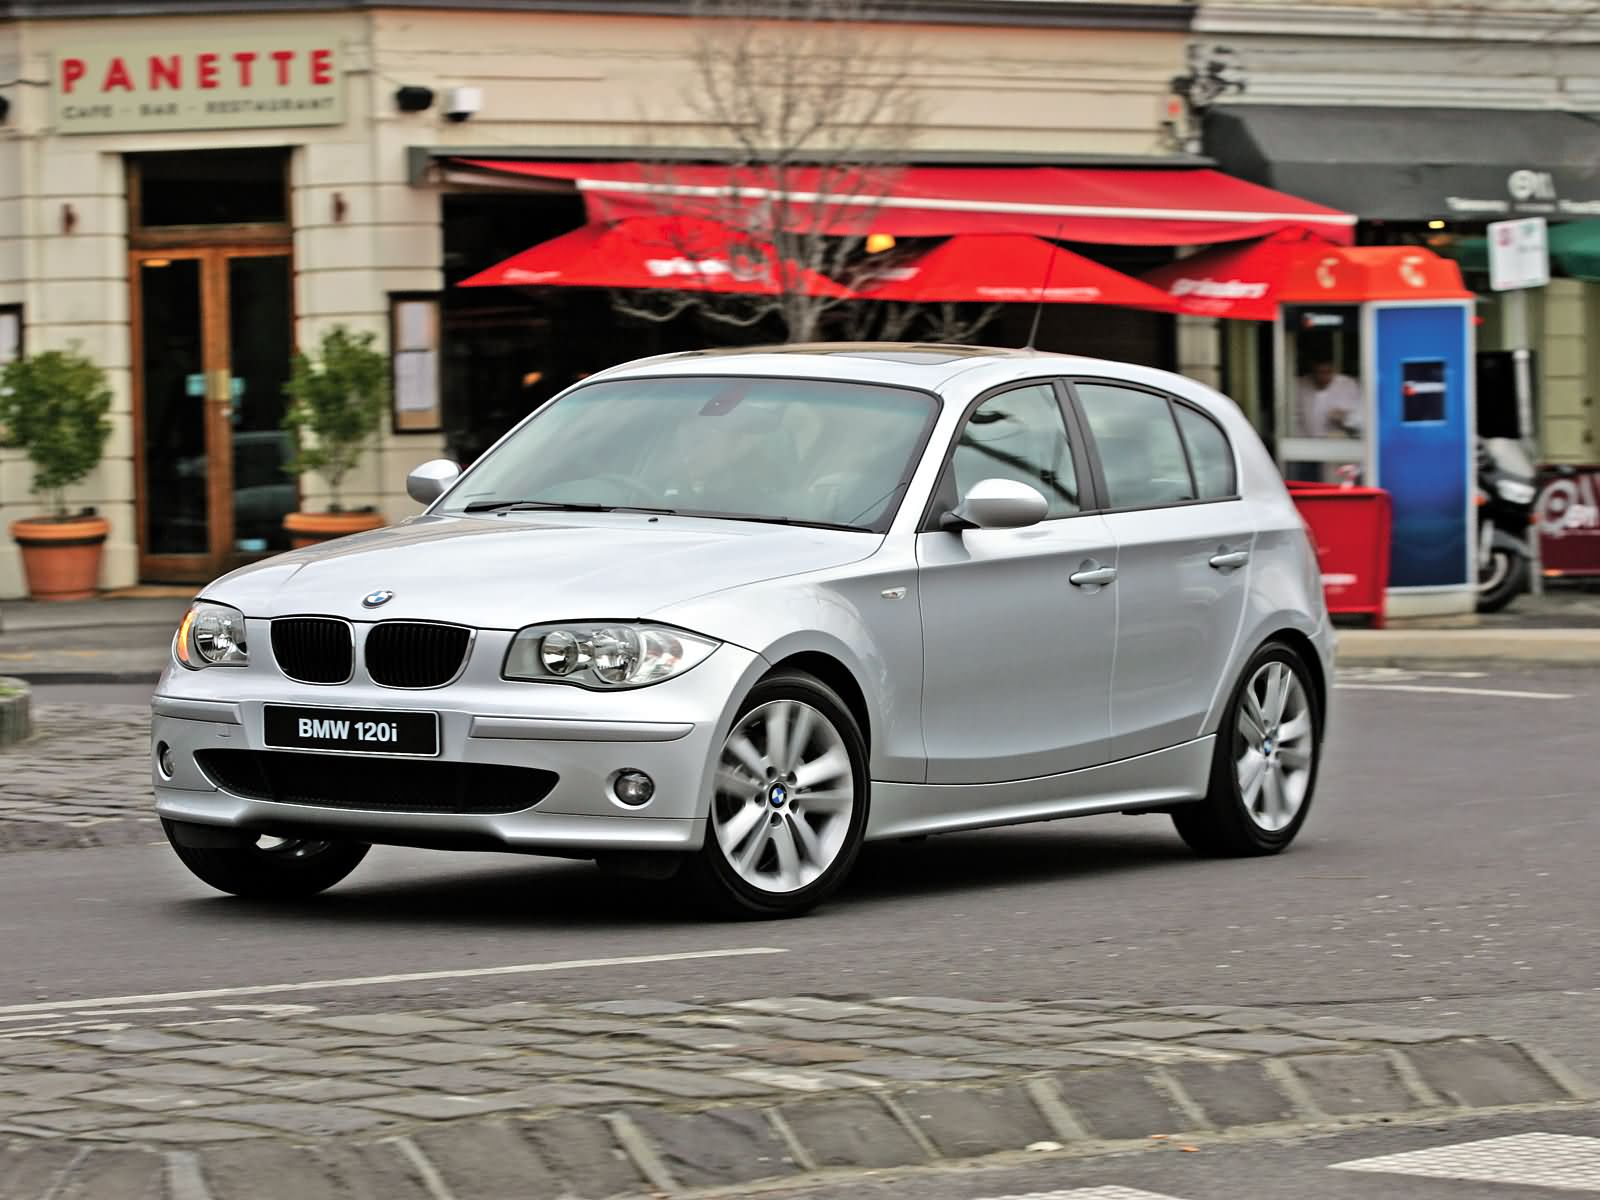 bmw 1 series e87 08. Black Bedroom Furniture Sets. Home Design Ideas